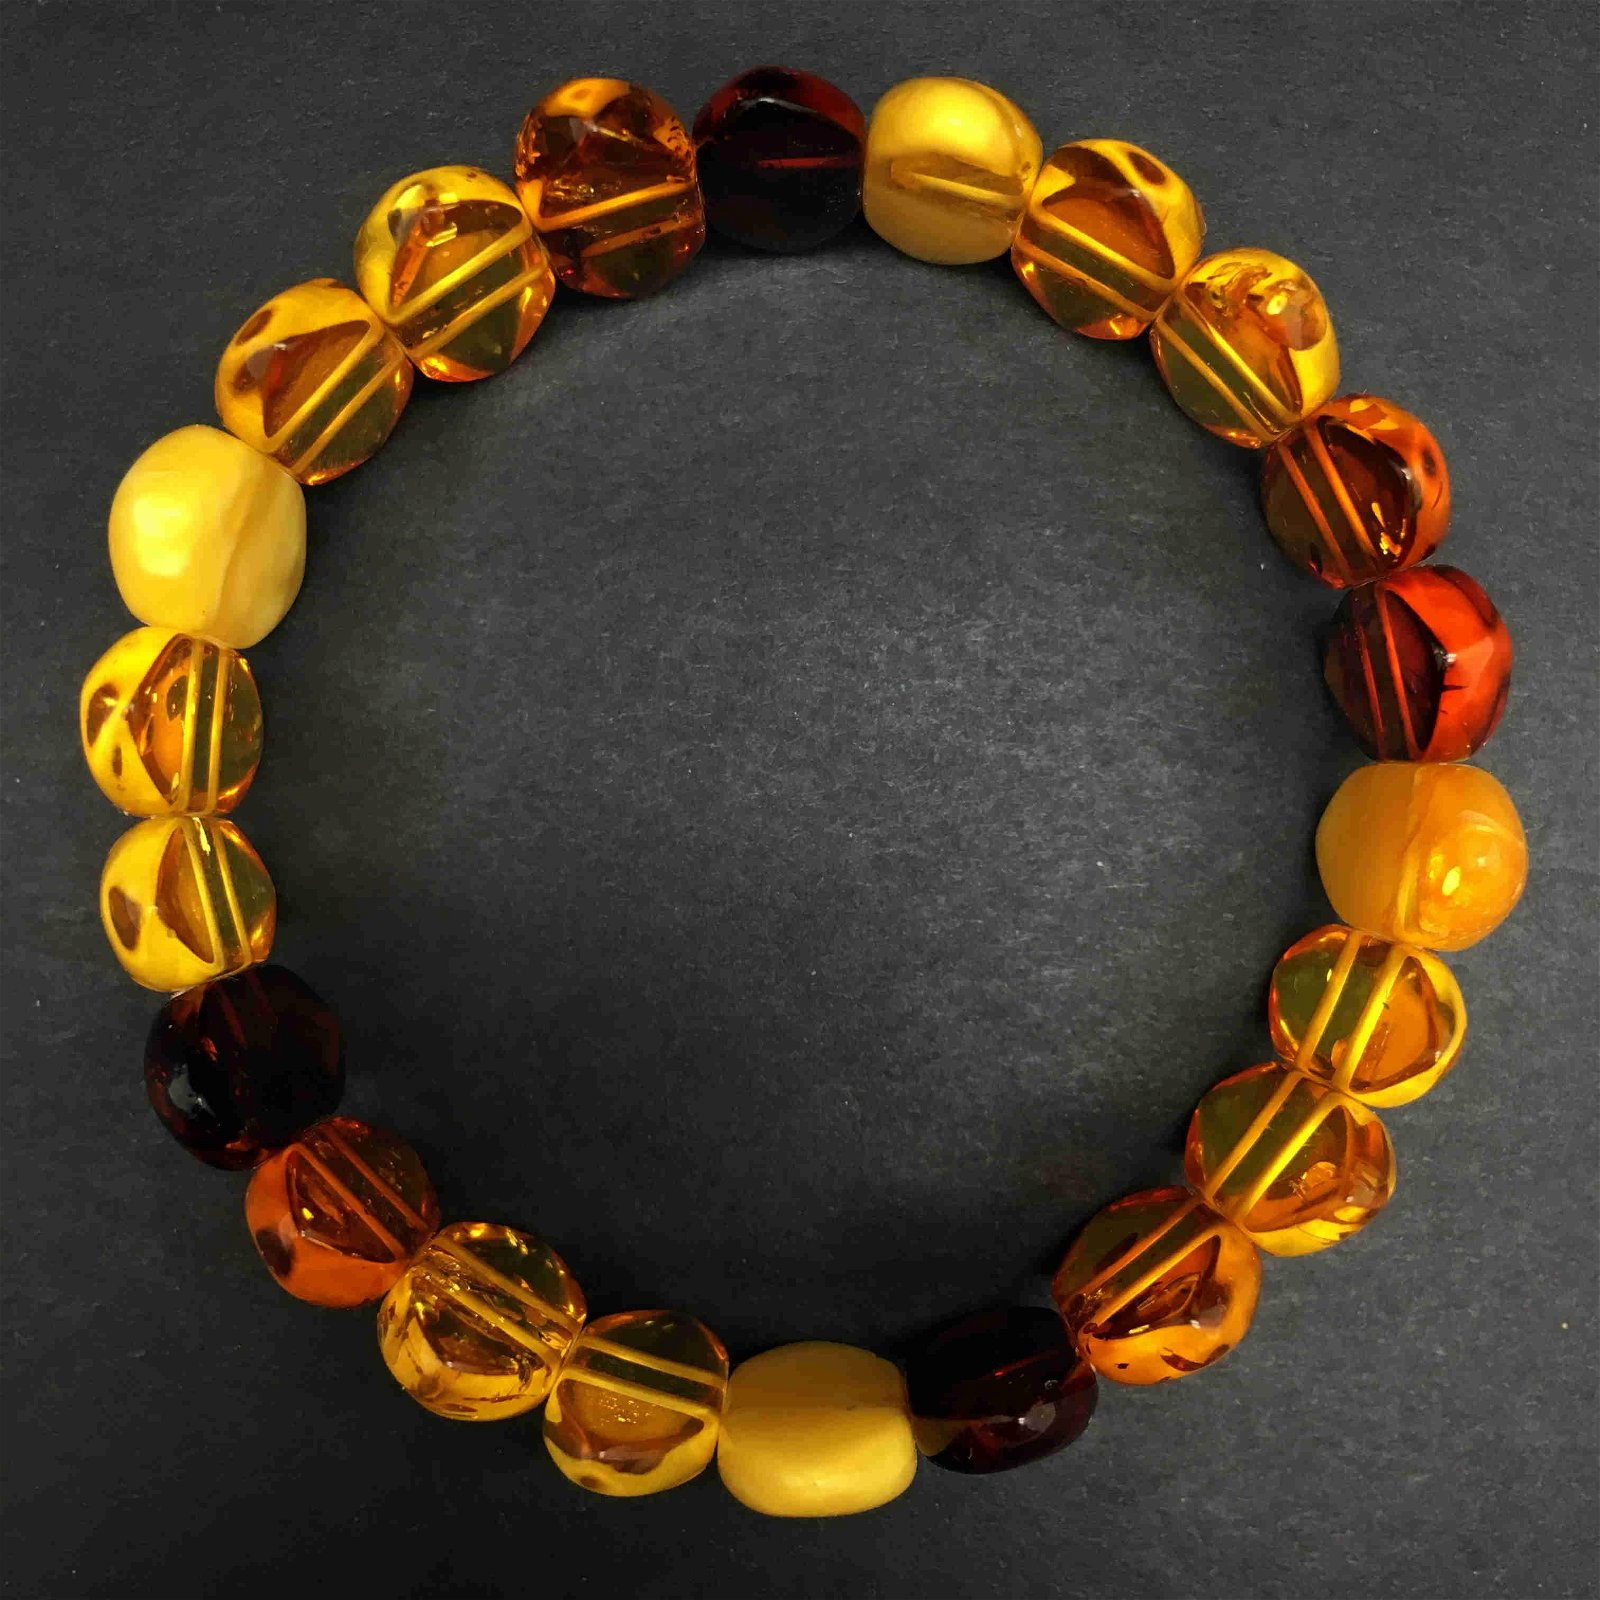 Splendid Unique Vintage Amber Bracelet made from Hand